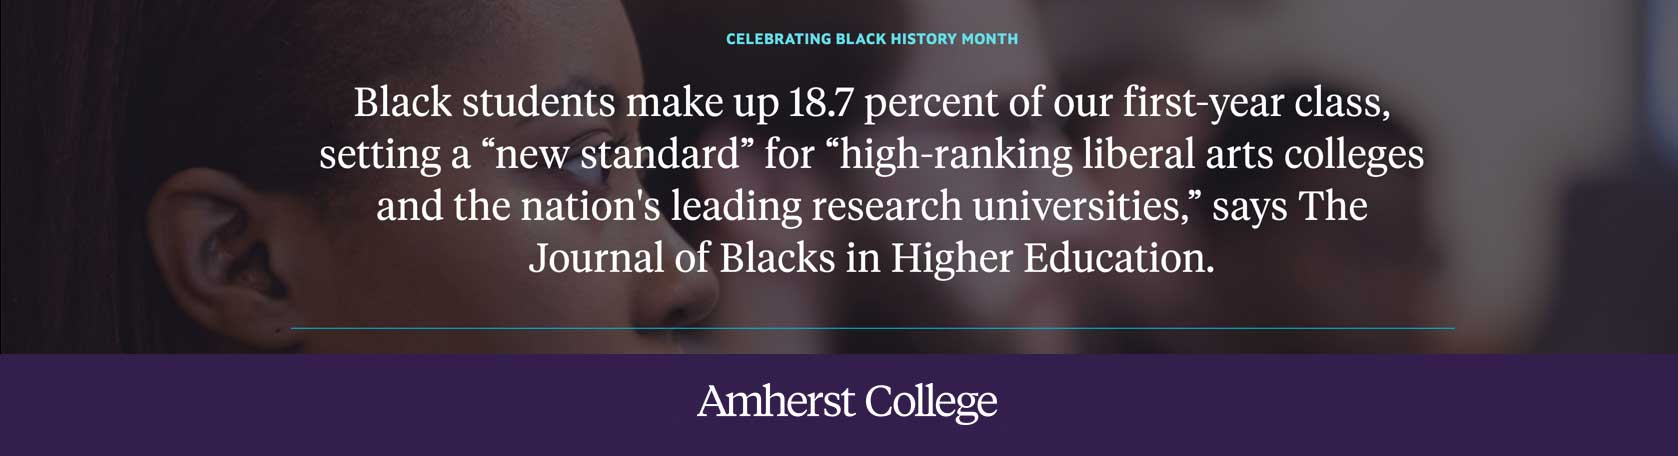 Black History Month Fact: Black students make up 18.7 percent of our first-year class.